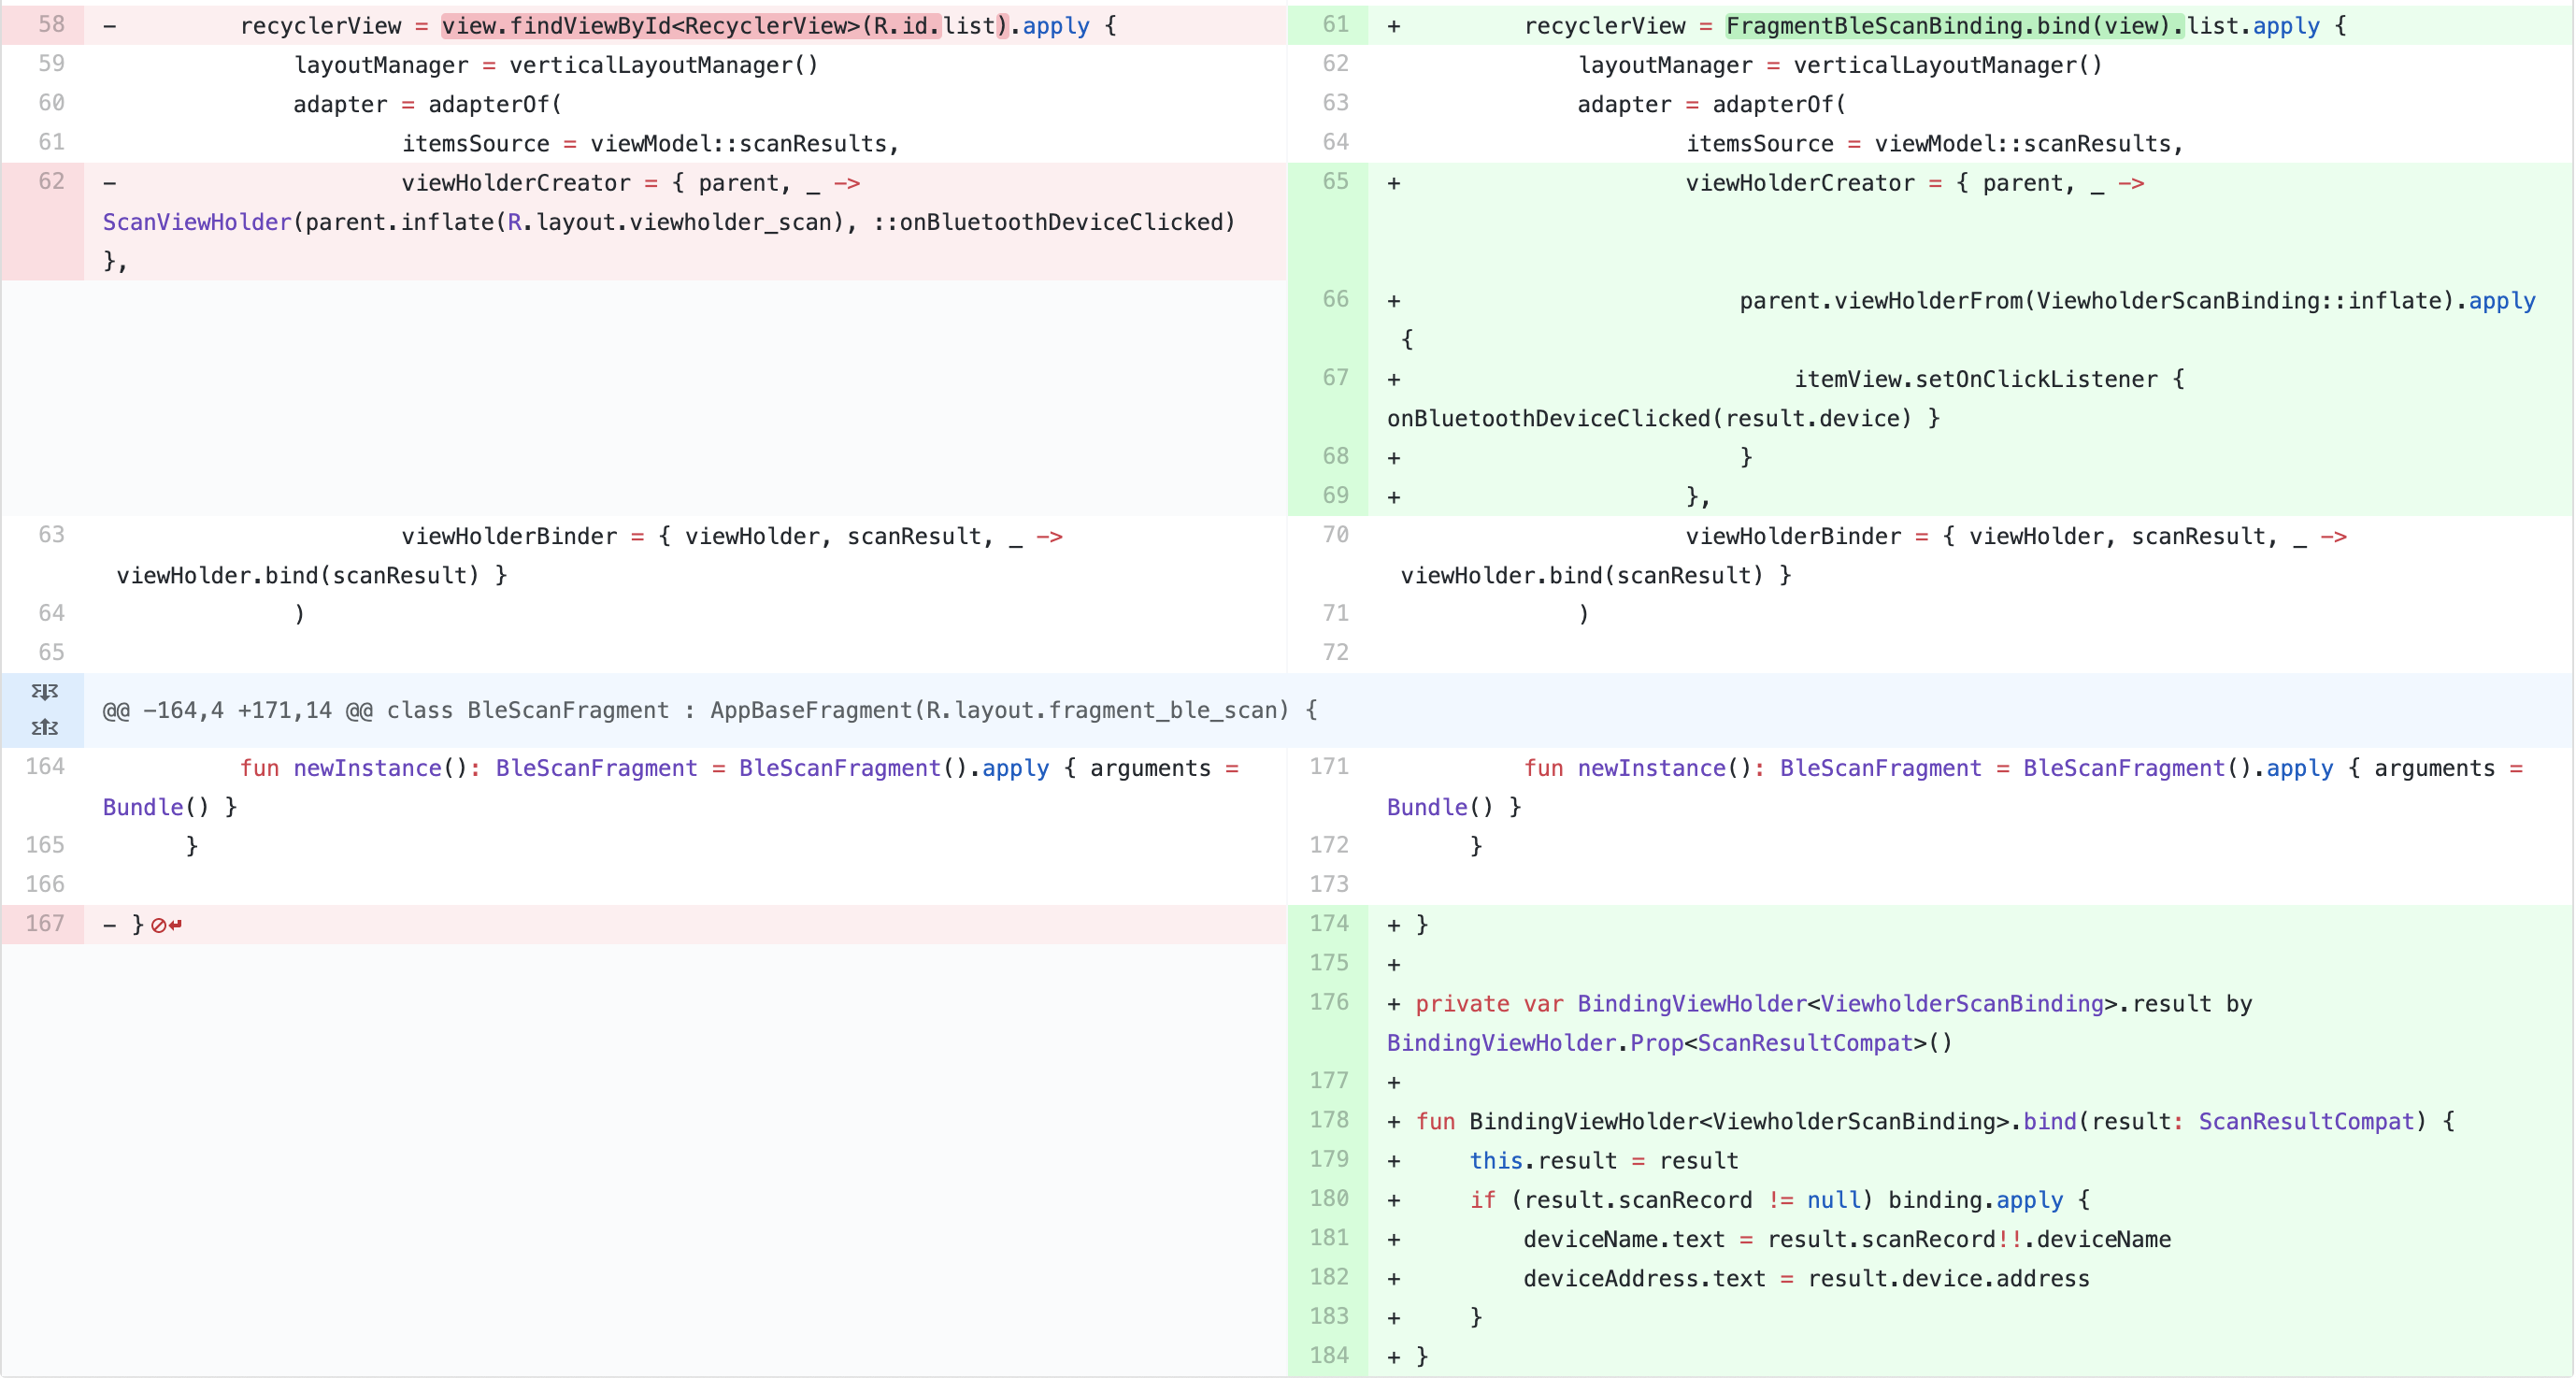 Added and changed code for BindingViewHolder and static property extension